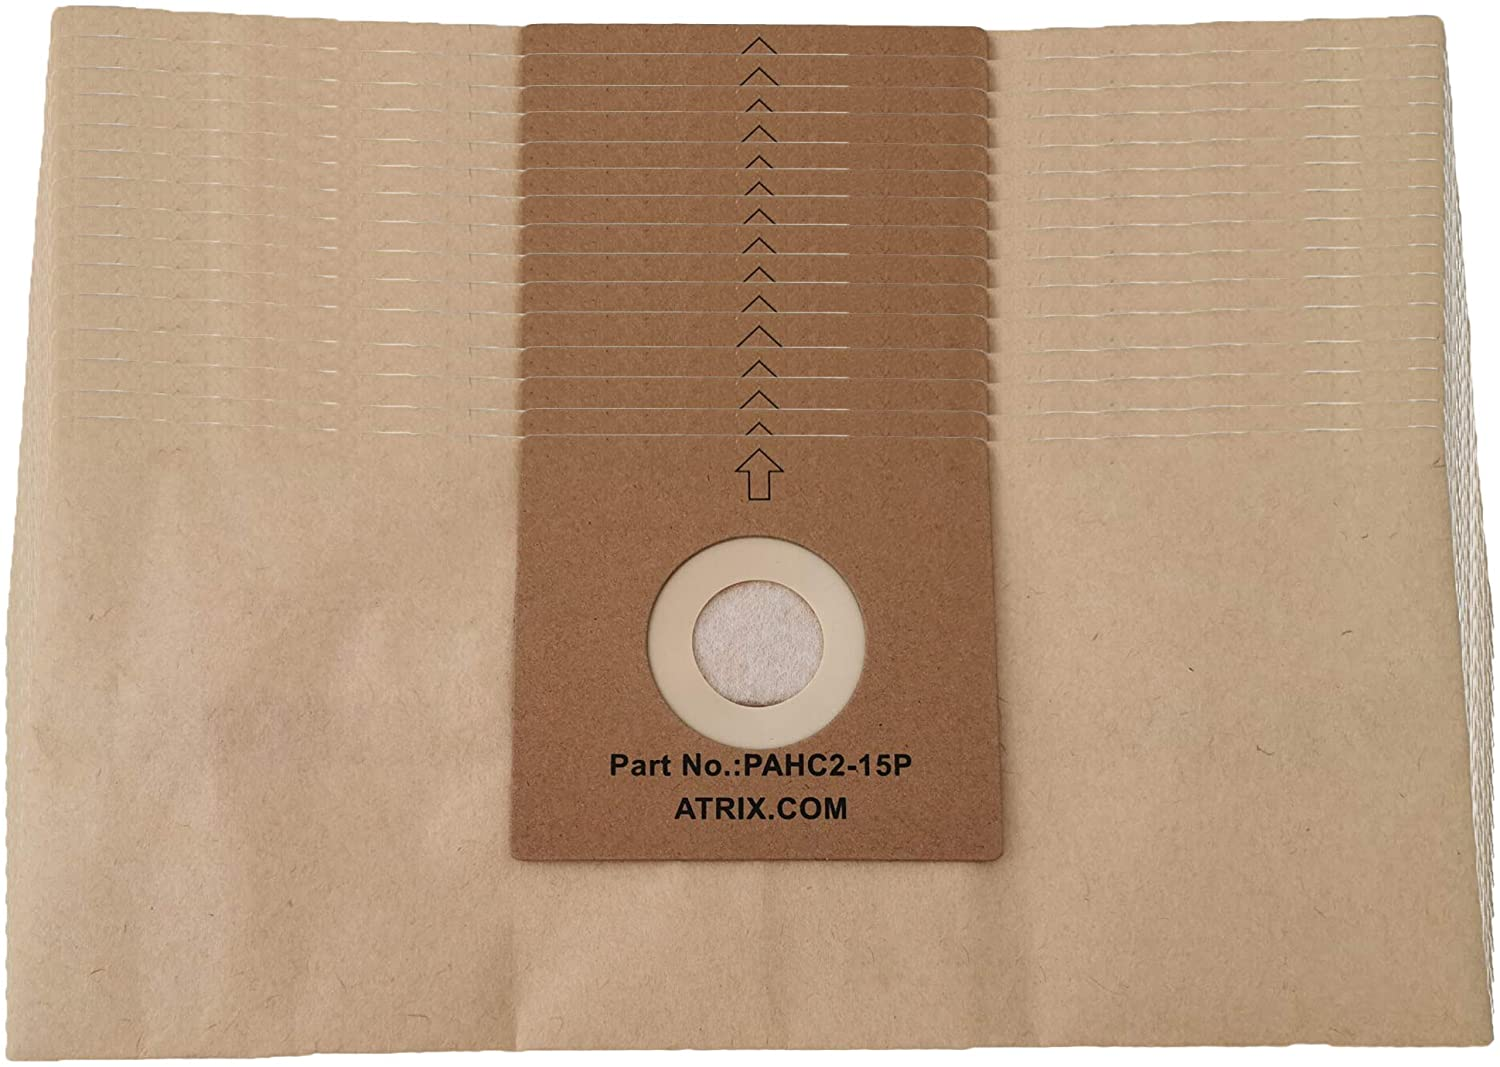 Atrix PAHC2-15P Vacuum Filter, Brown, 15 Count